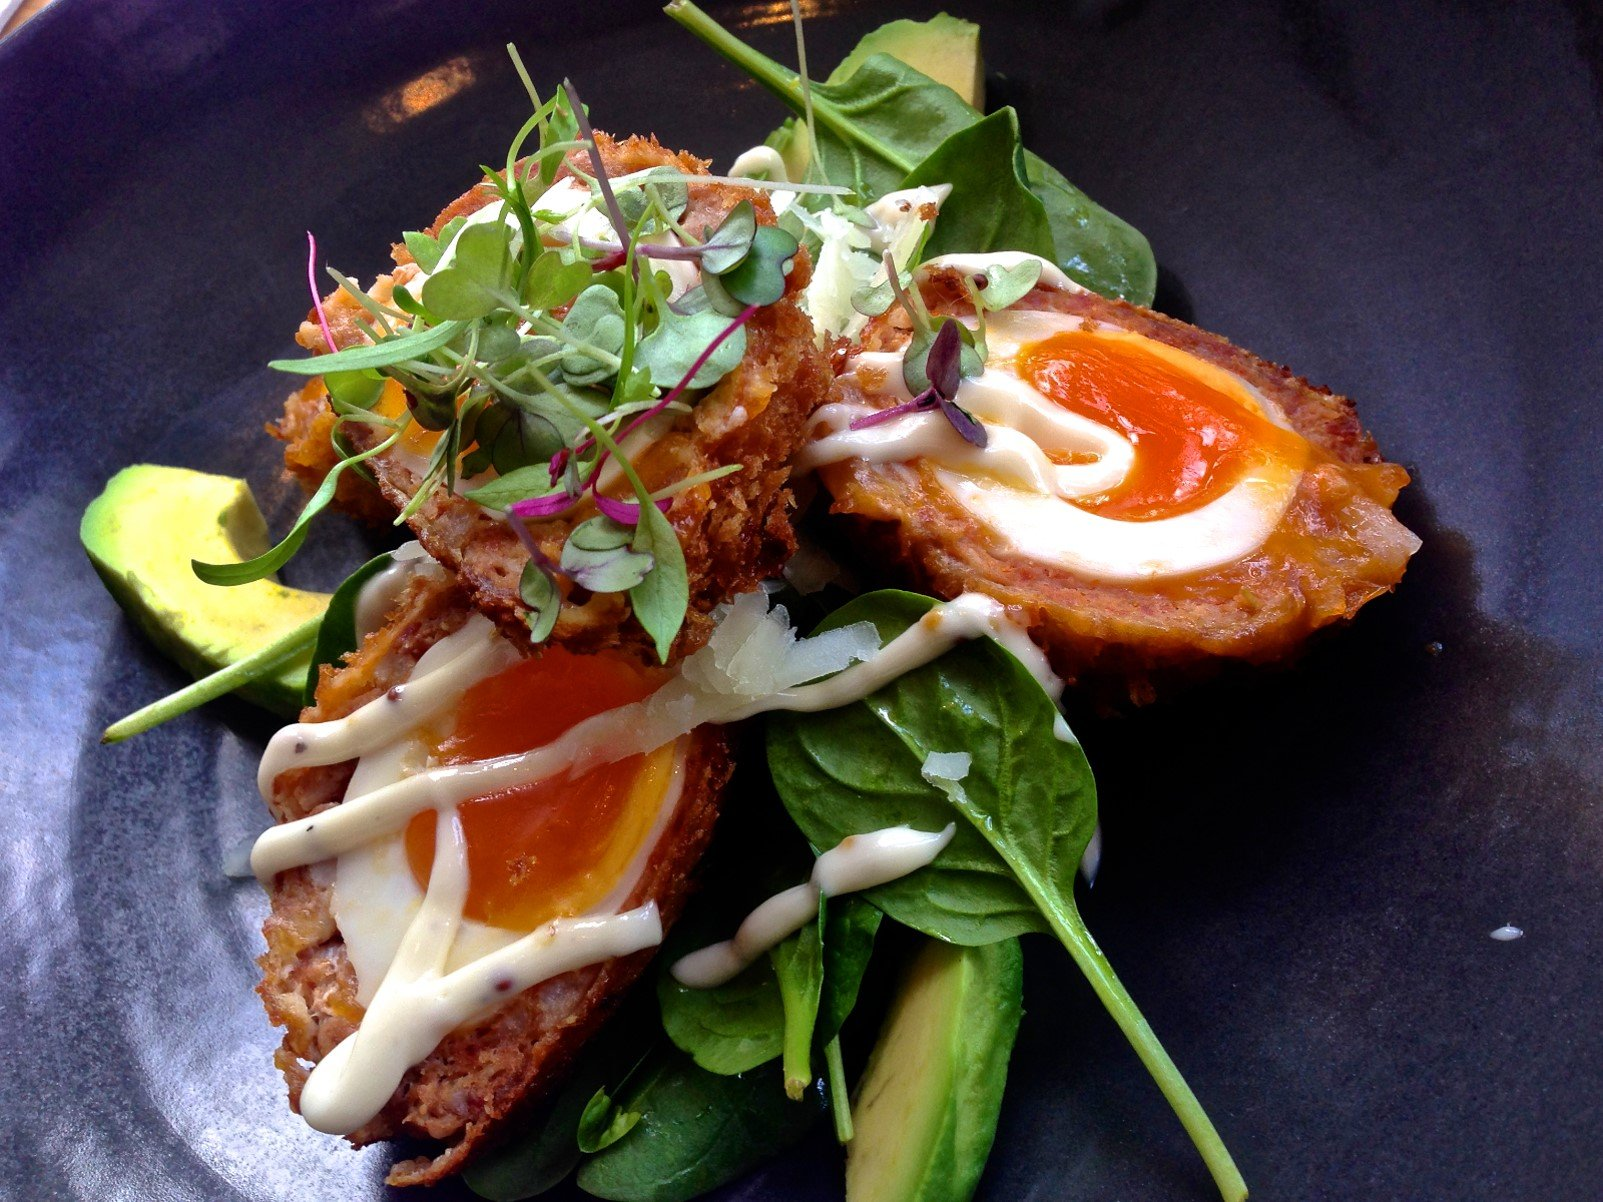 Scotch eggs at Fifty Acres cafe in Richmond by Katherine Lim (CC)